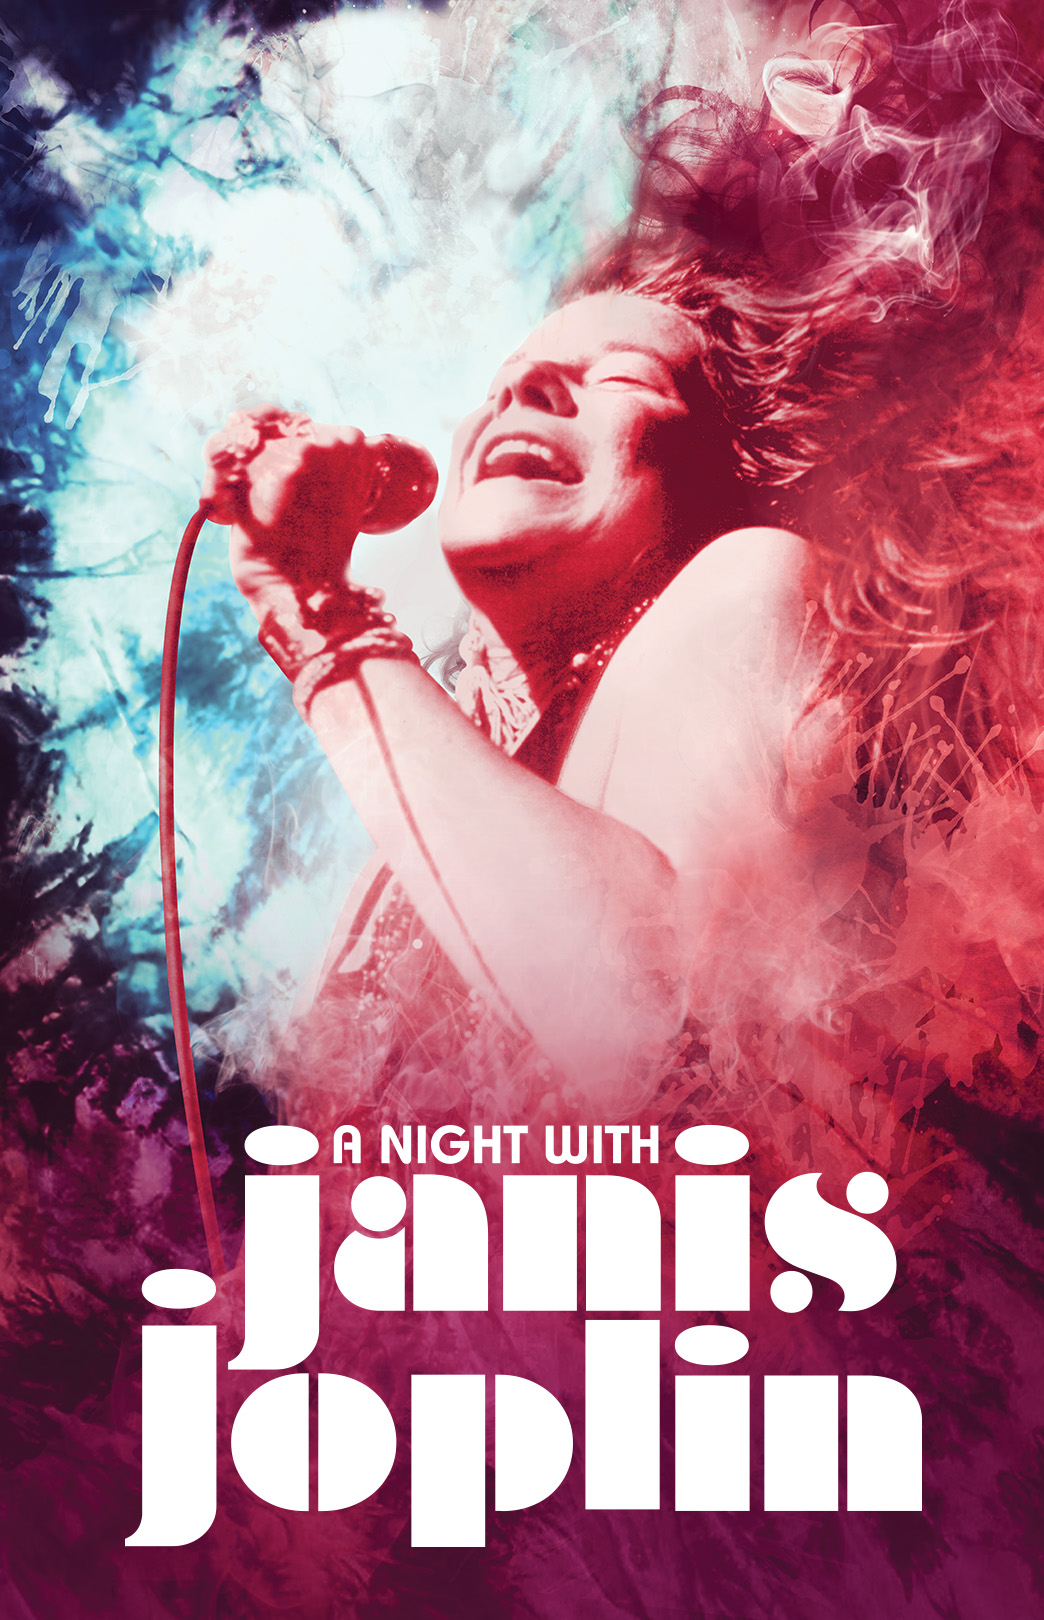 A Night With Janis Joplin at Island Resort & Casino